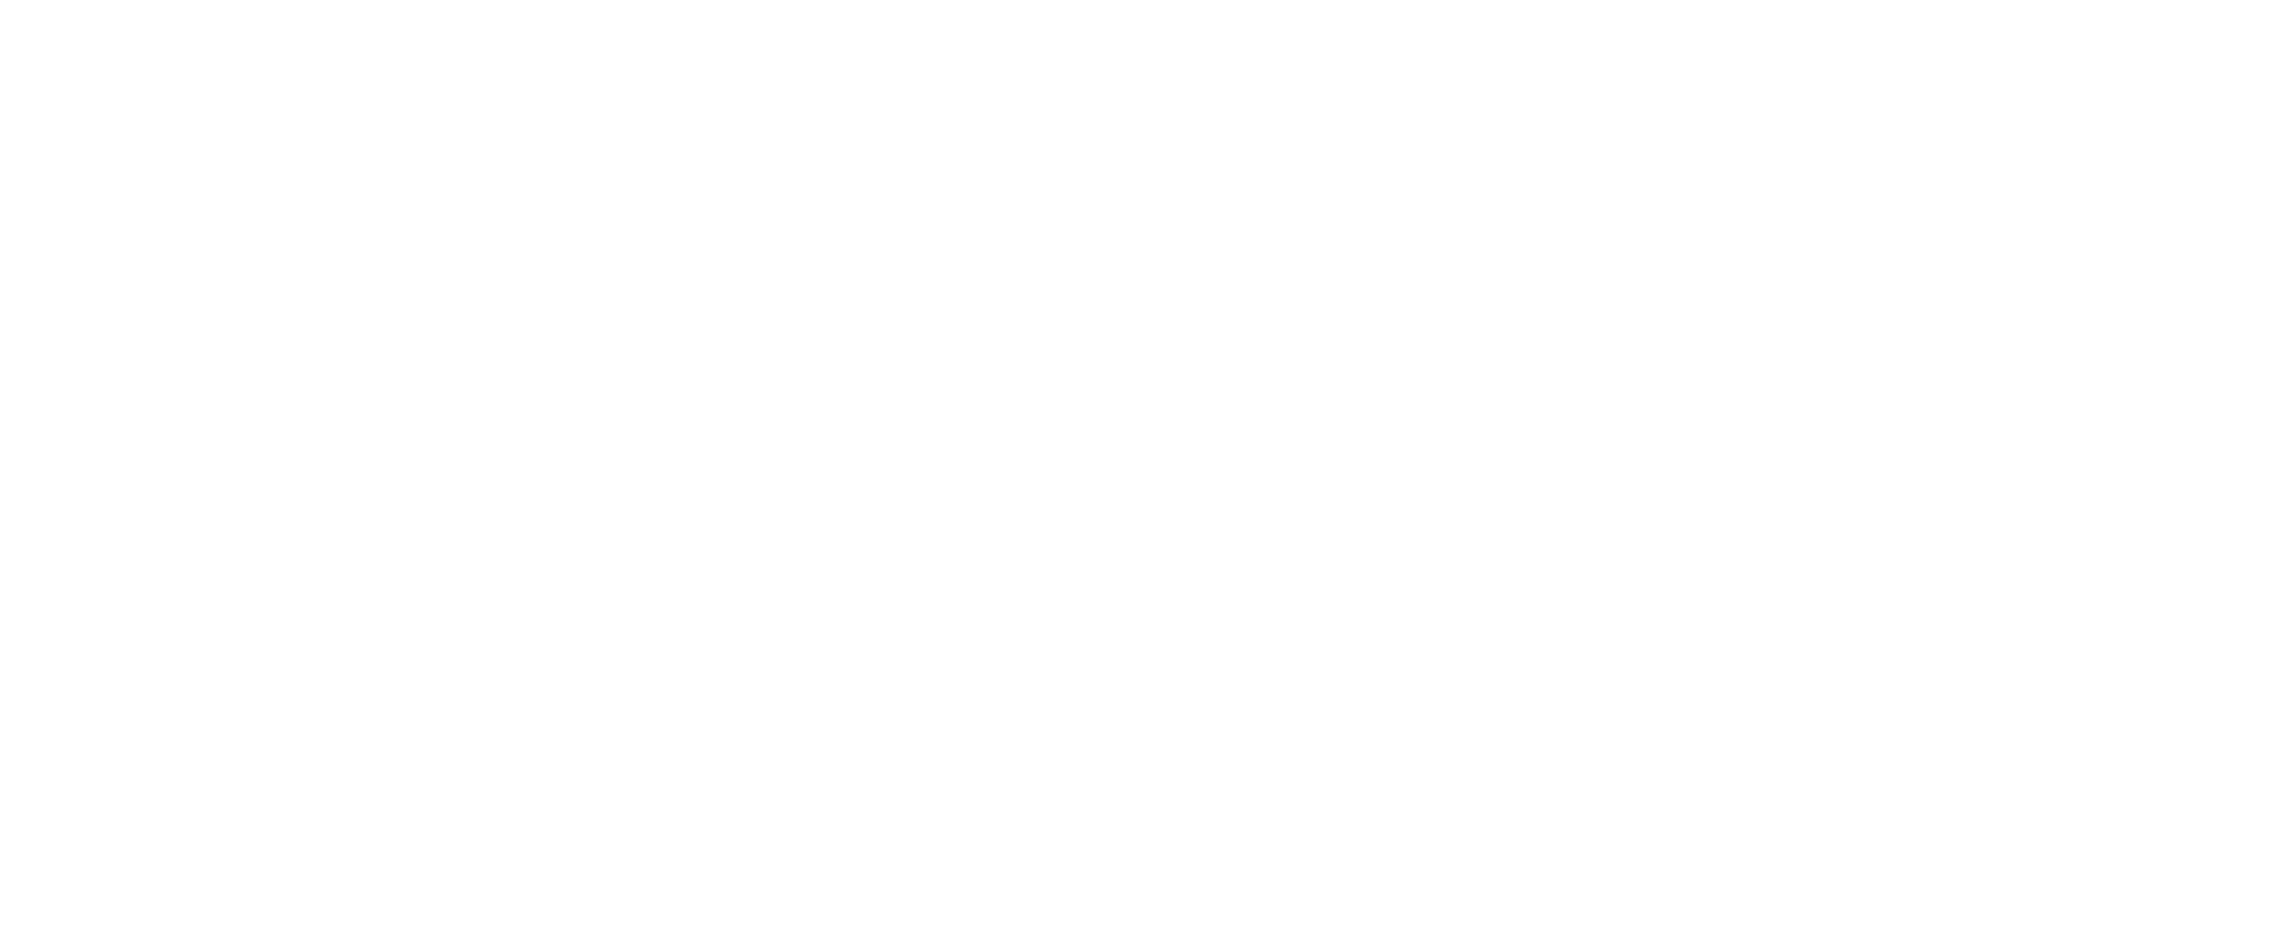 The Homespun Players